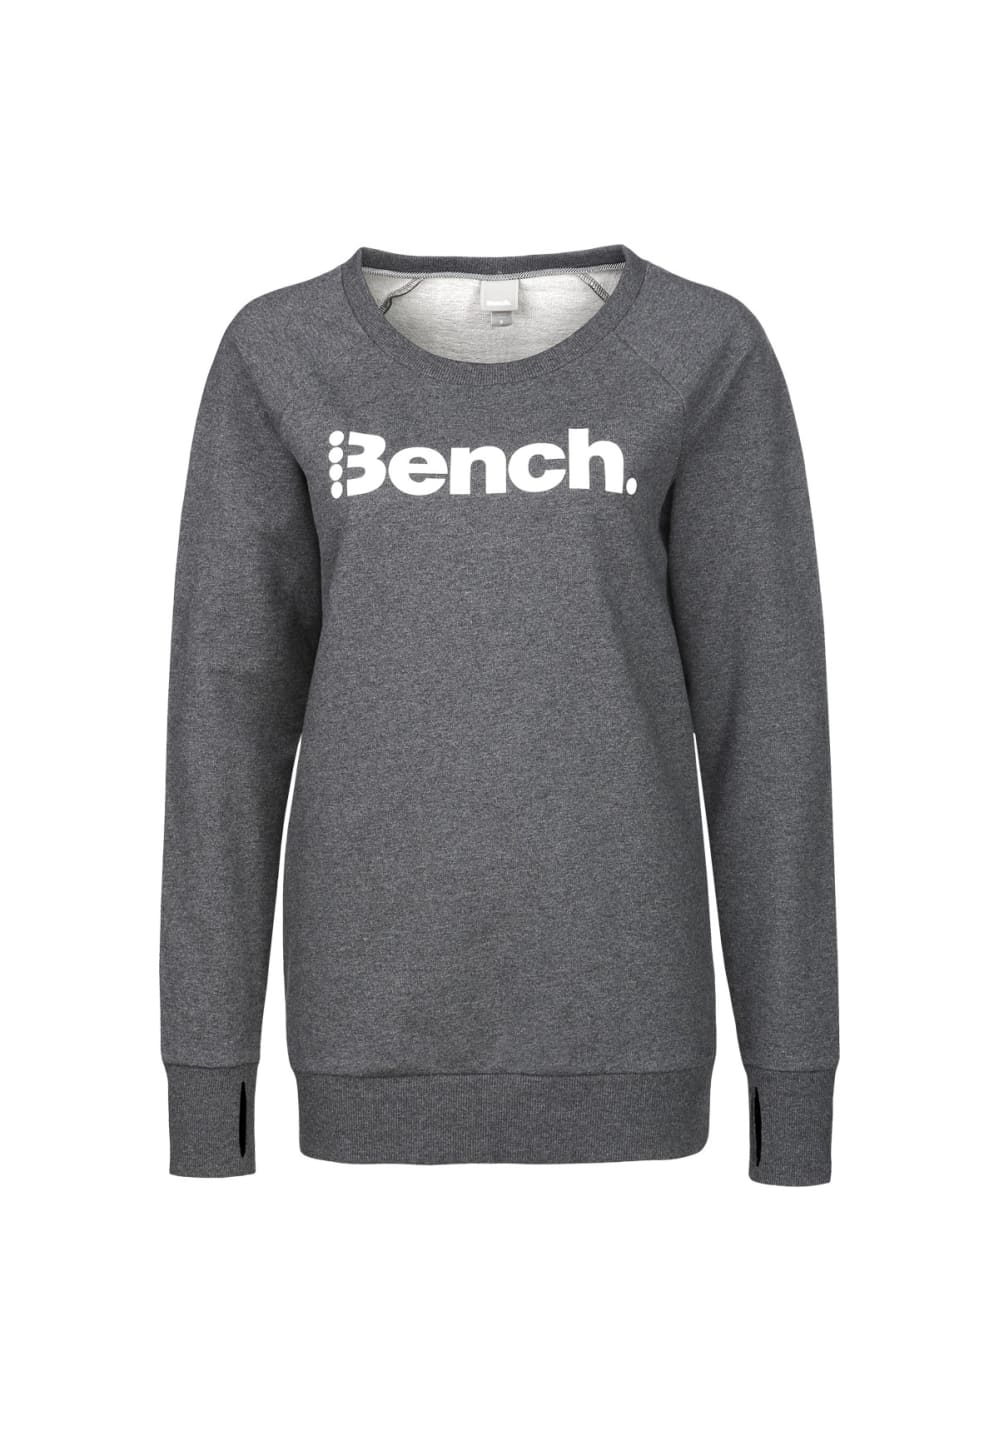 0e16fe0c6 Bench Heritage Long Logo Crew Neck - Sweatshirts / Hoodies for Women - Grey